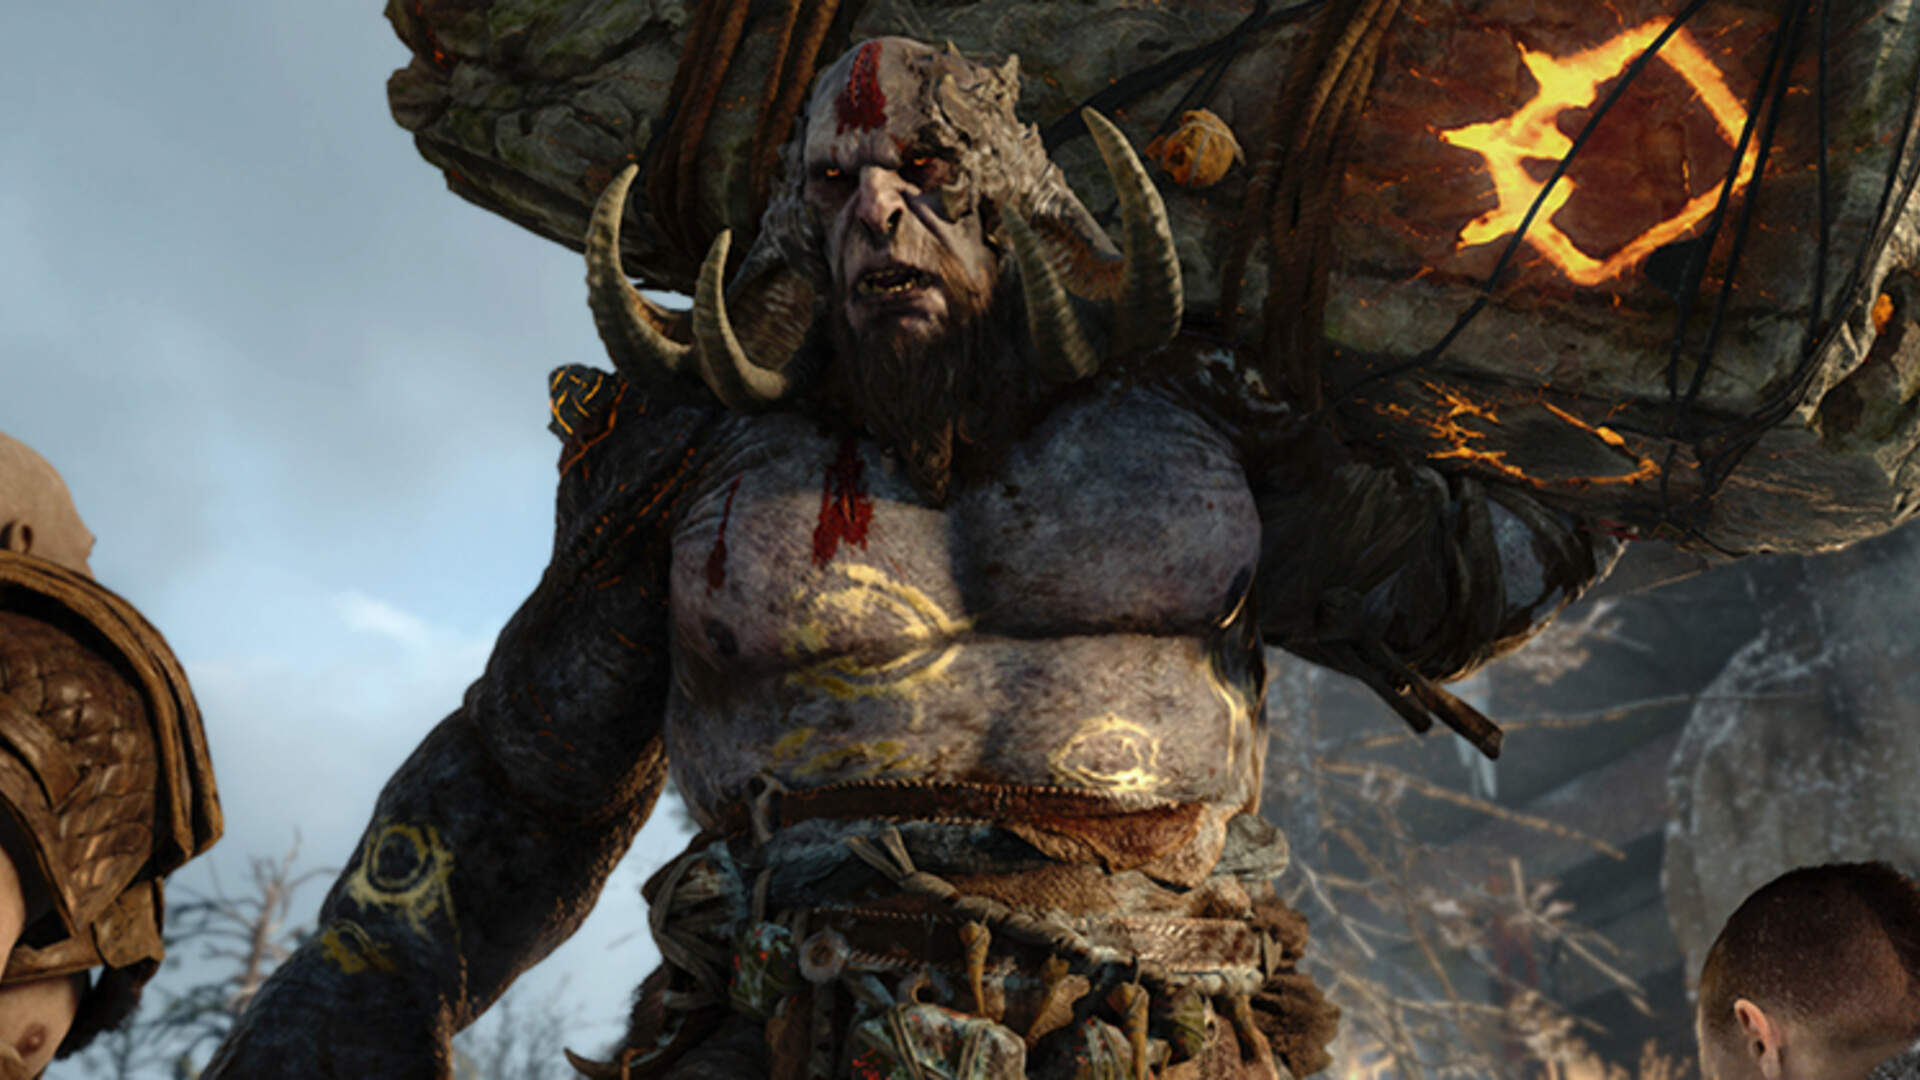 The New God of War Showcases a More Sensitive, Caring Kratos